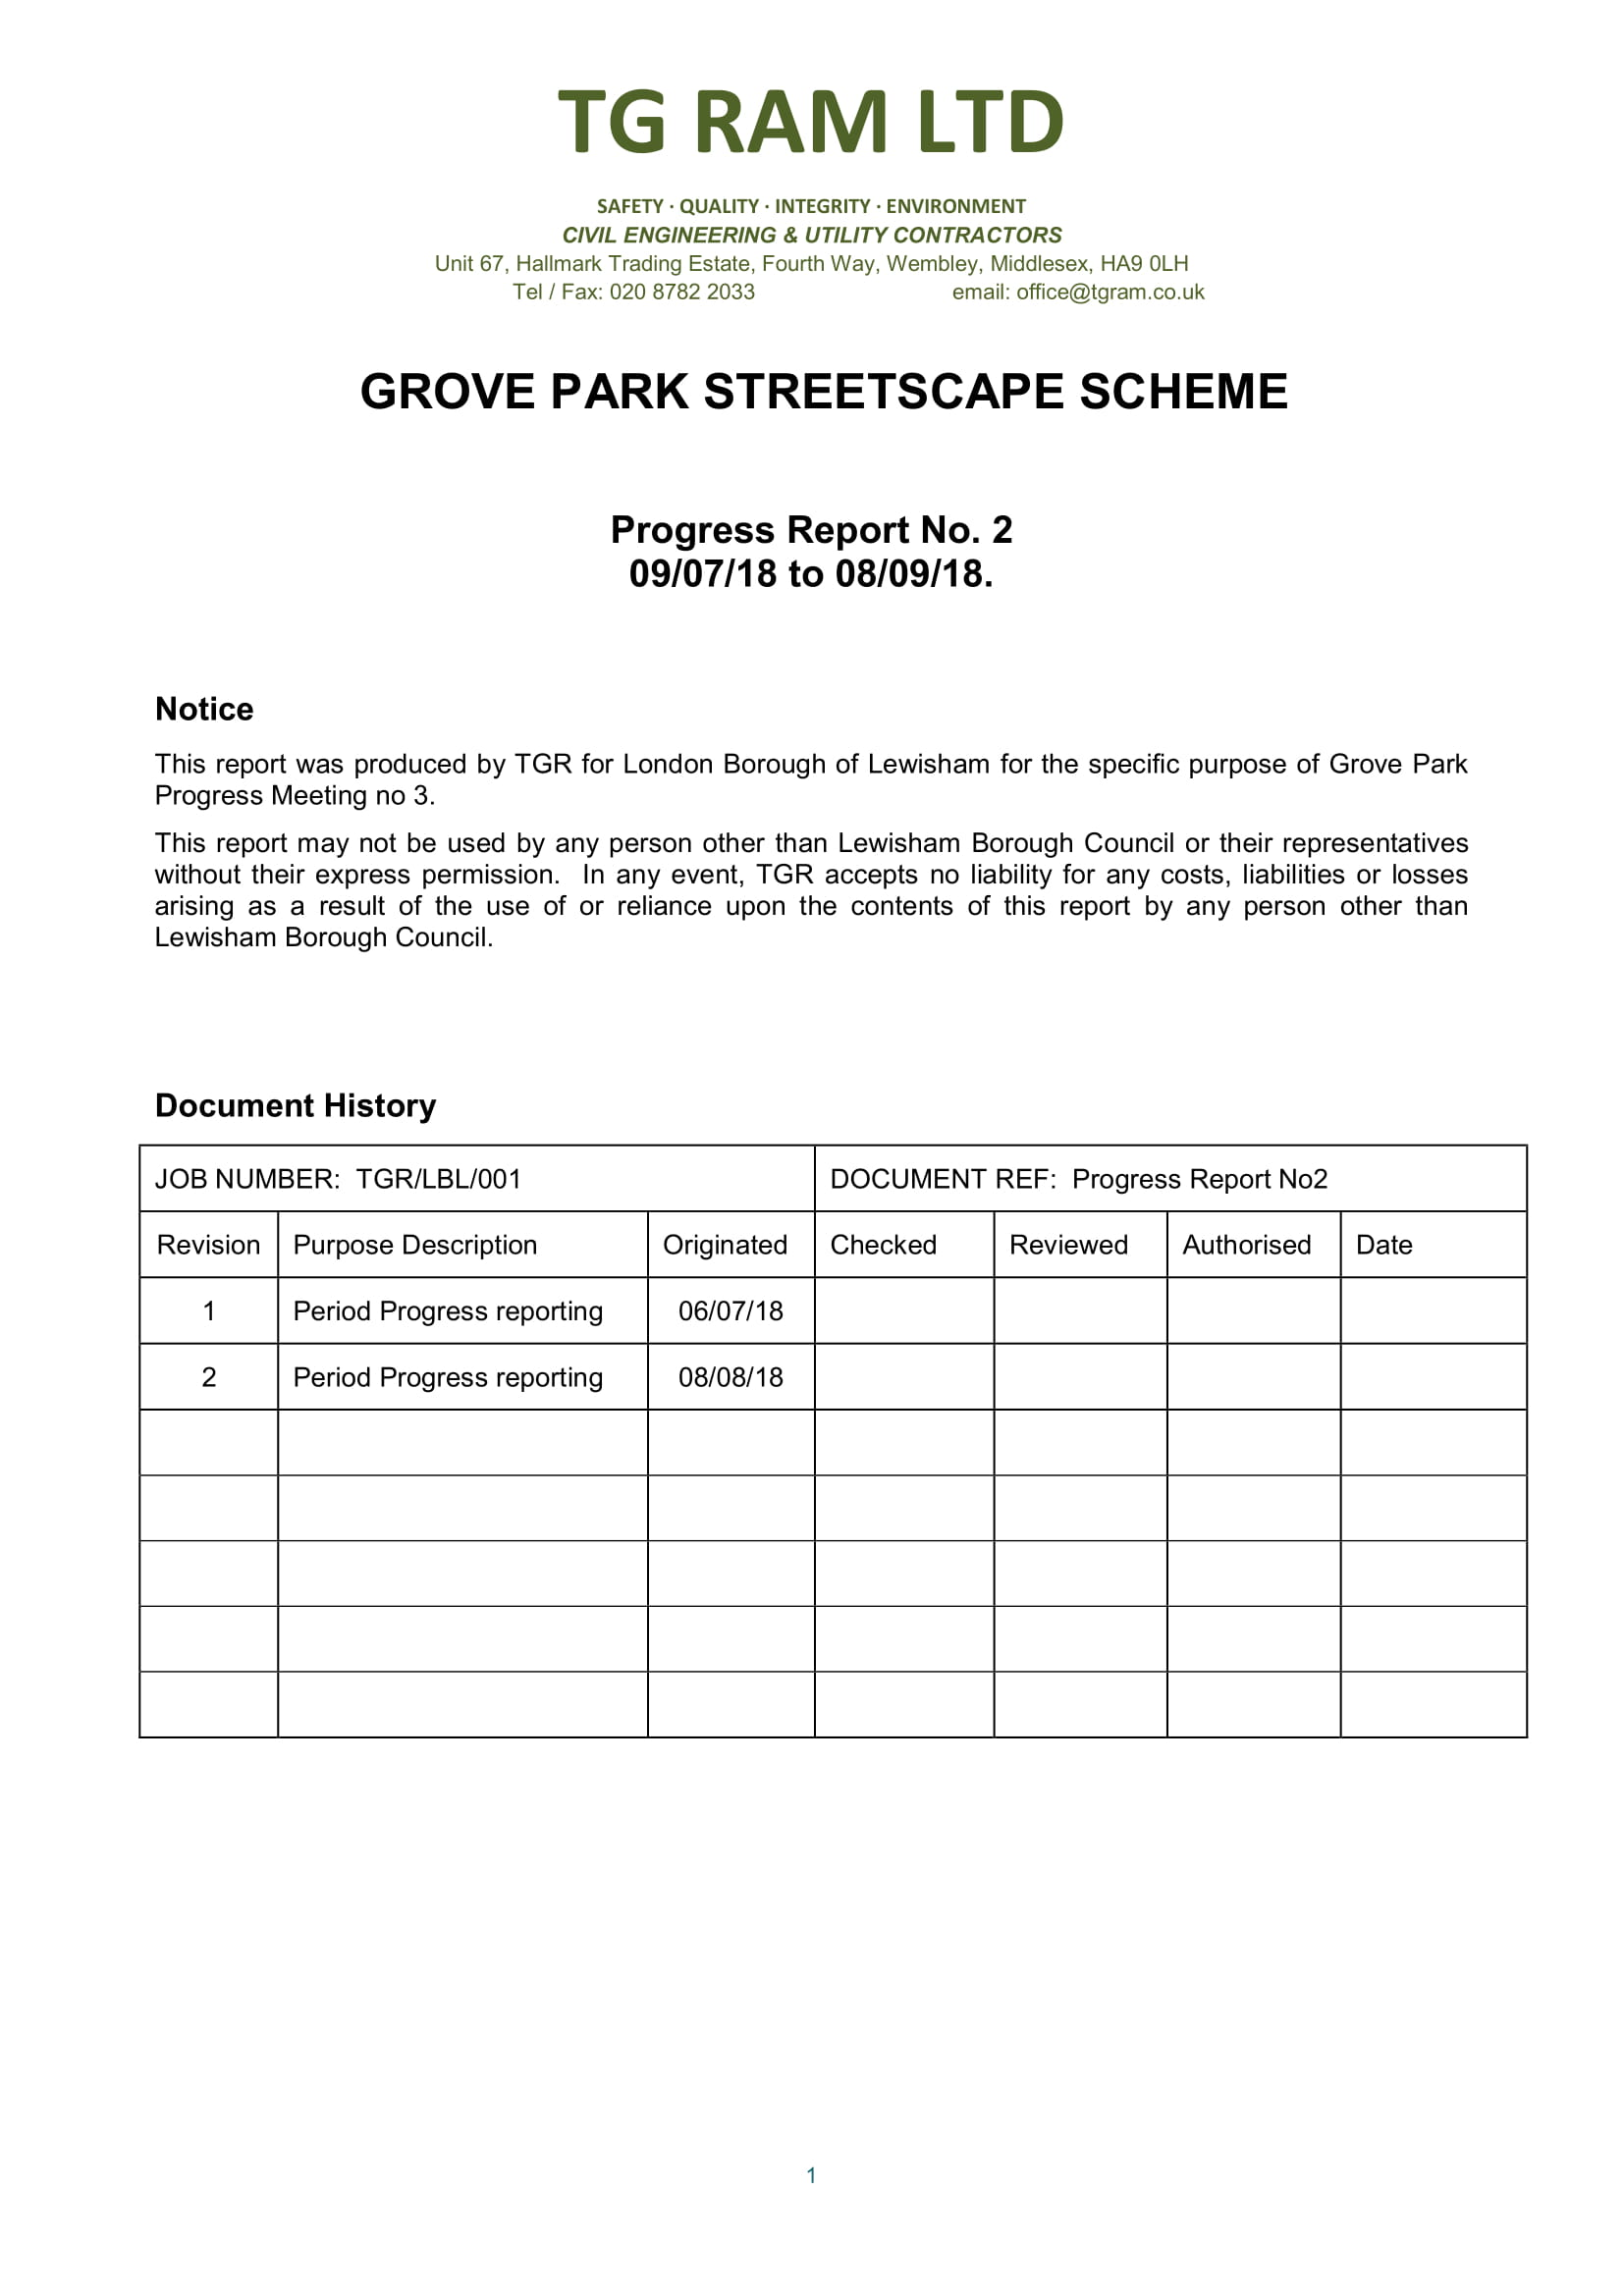 grove-park-short-progress-report-2_shortened-version-1